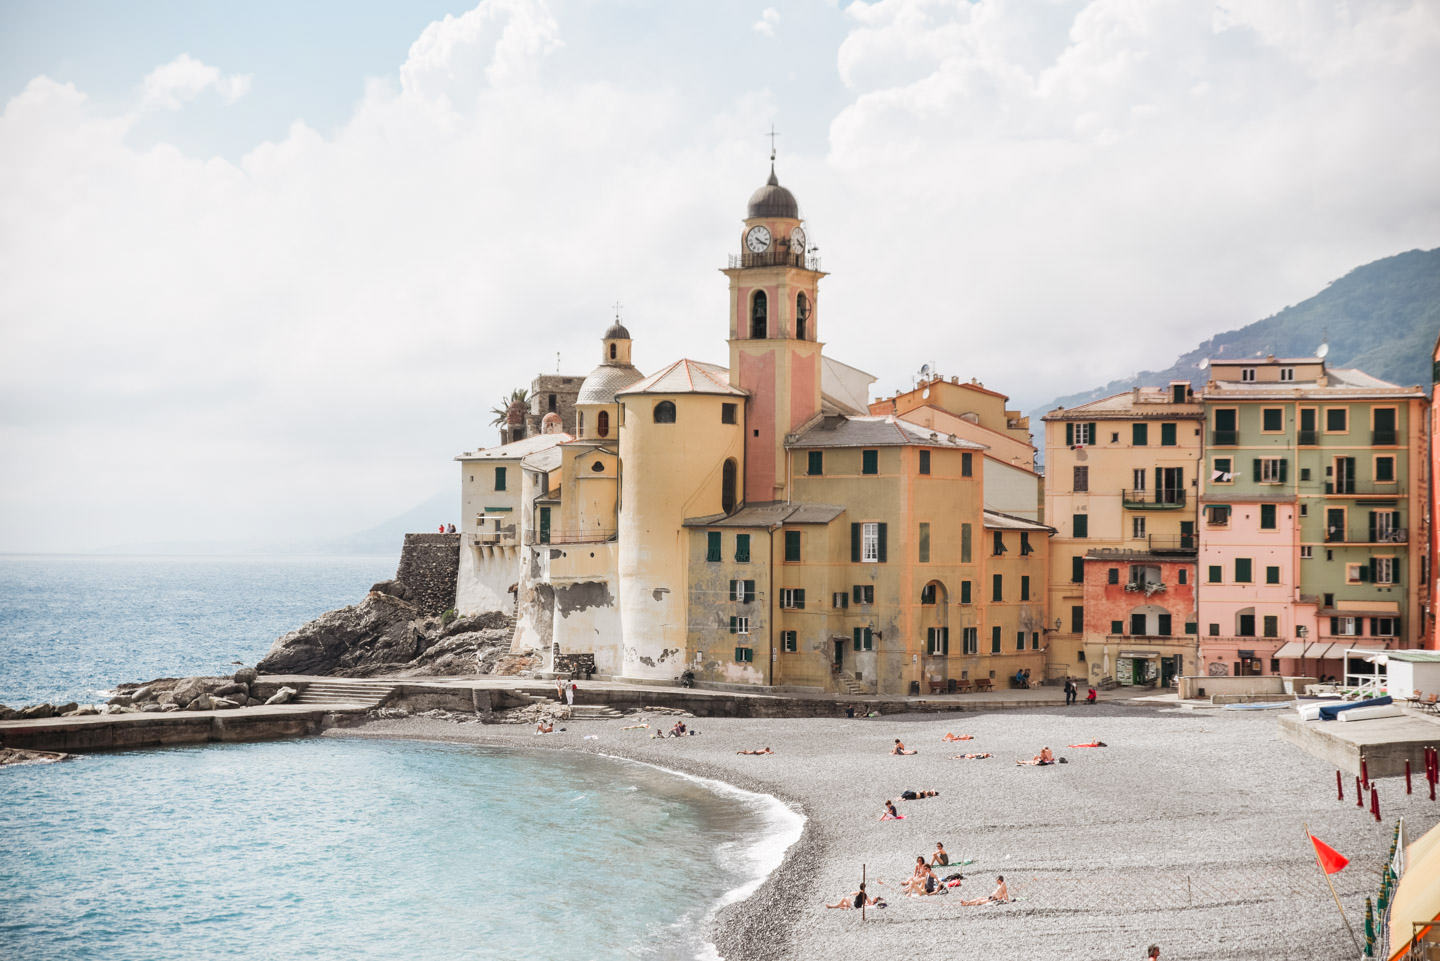 Blog-Mode-And-The-City-Lifestyle-Italie-Bocadasse-Camogli-Sestri-Levante-16